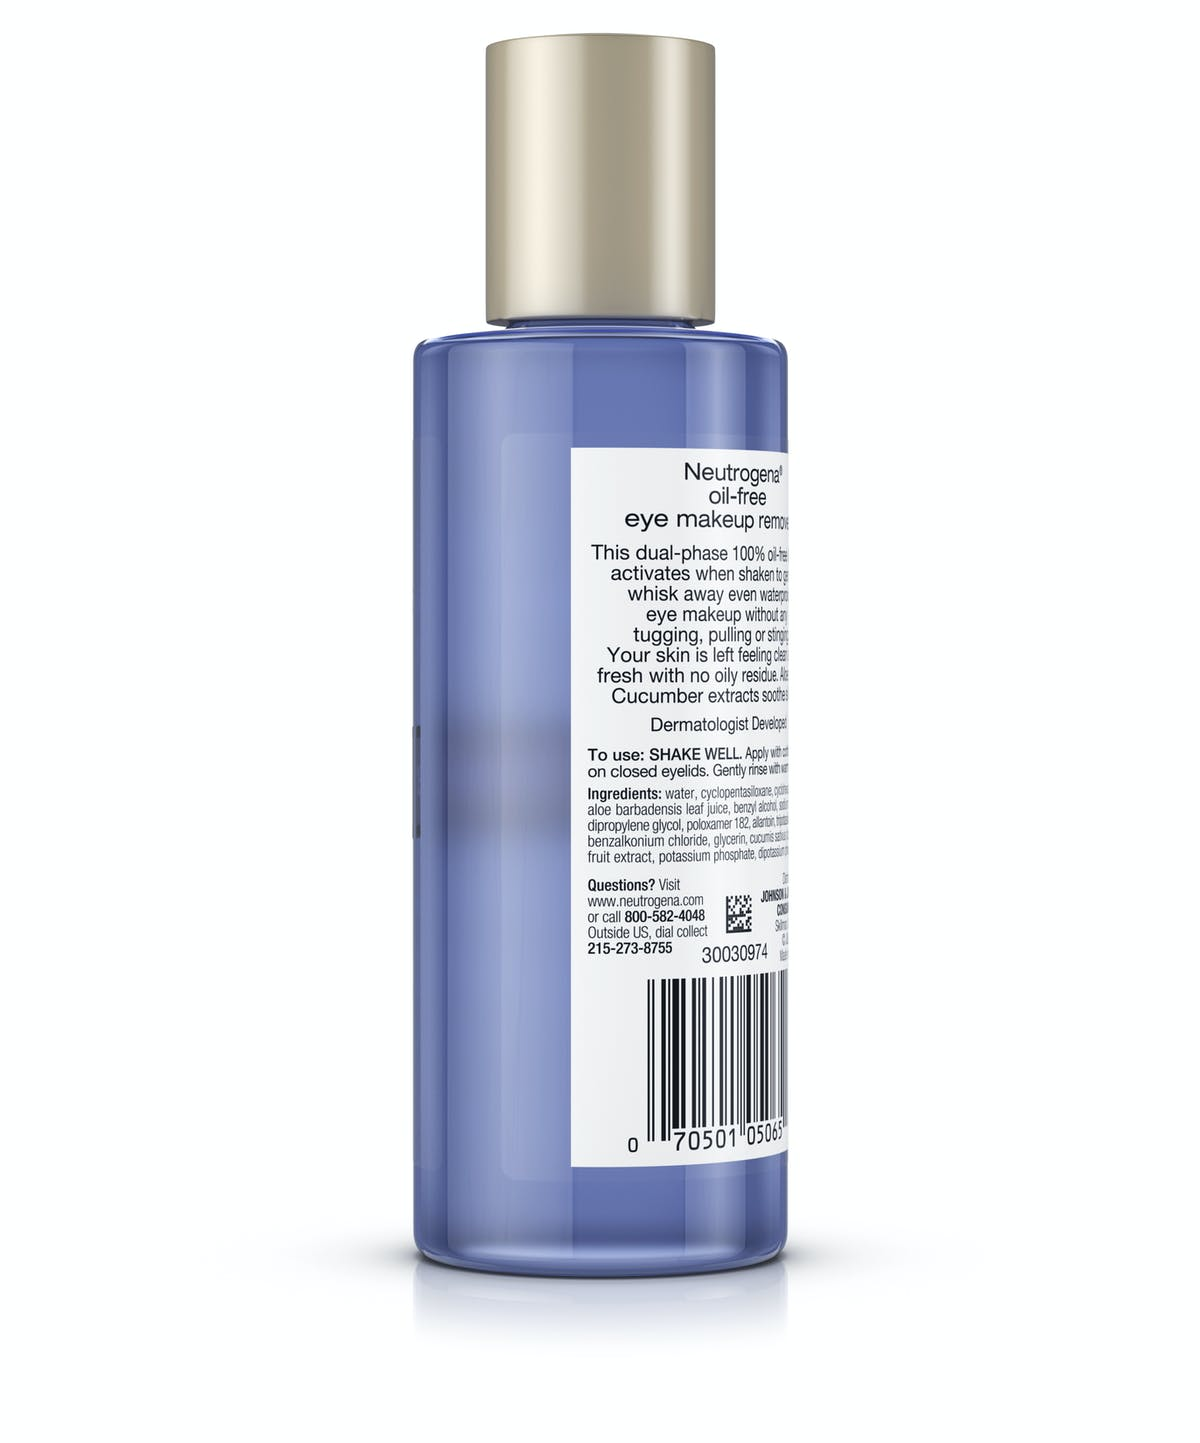 dac511381f7 ... Gentle Oil-Free Liquid Eye Makeup Remover for Waterproof Mascara ...